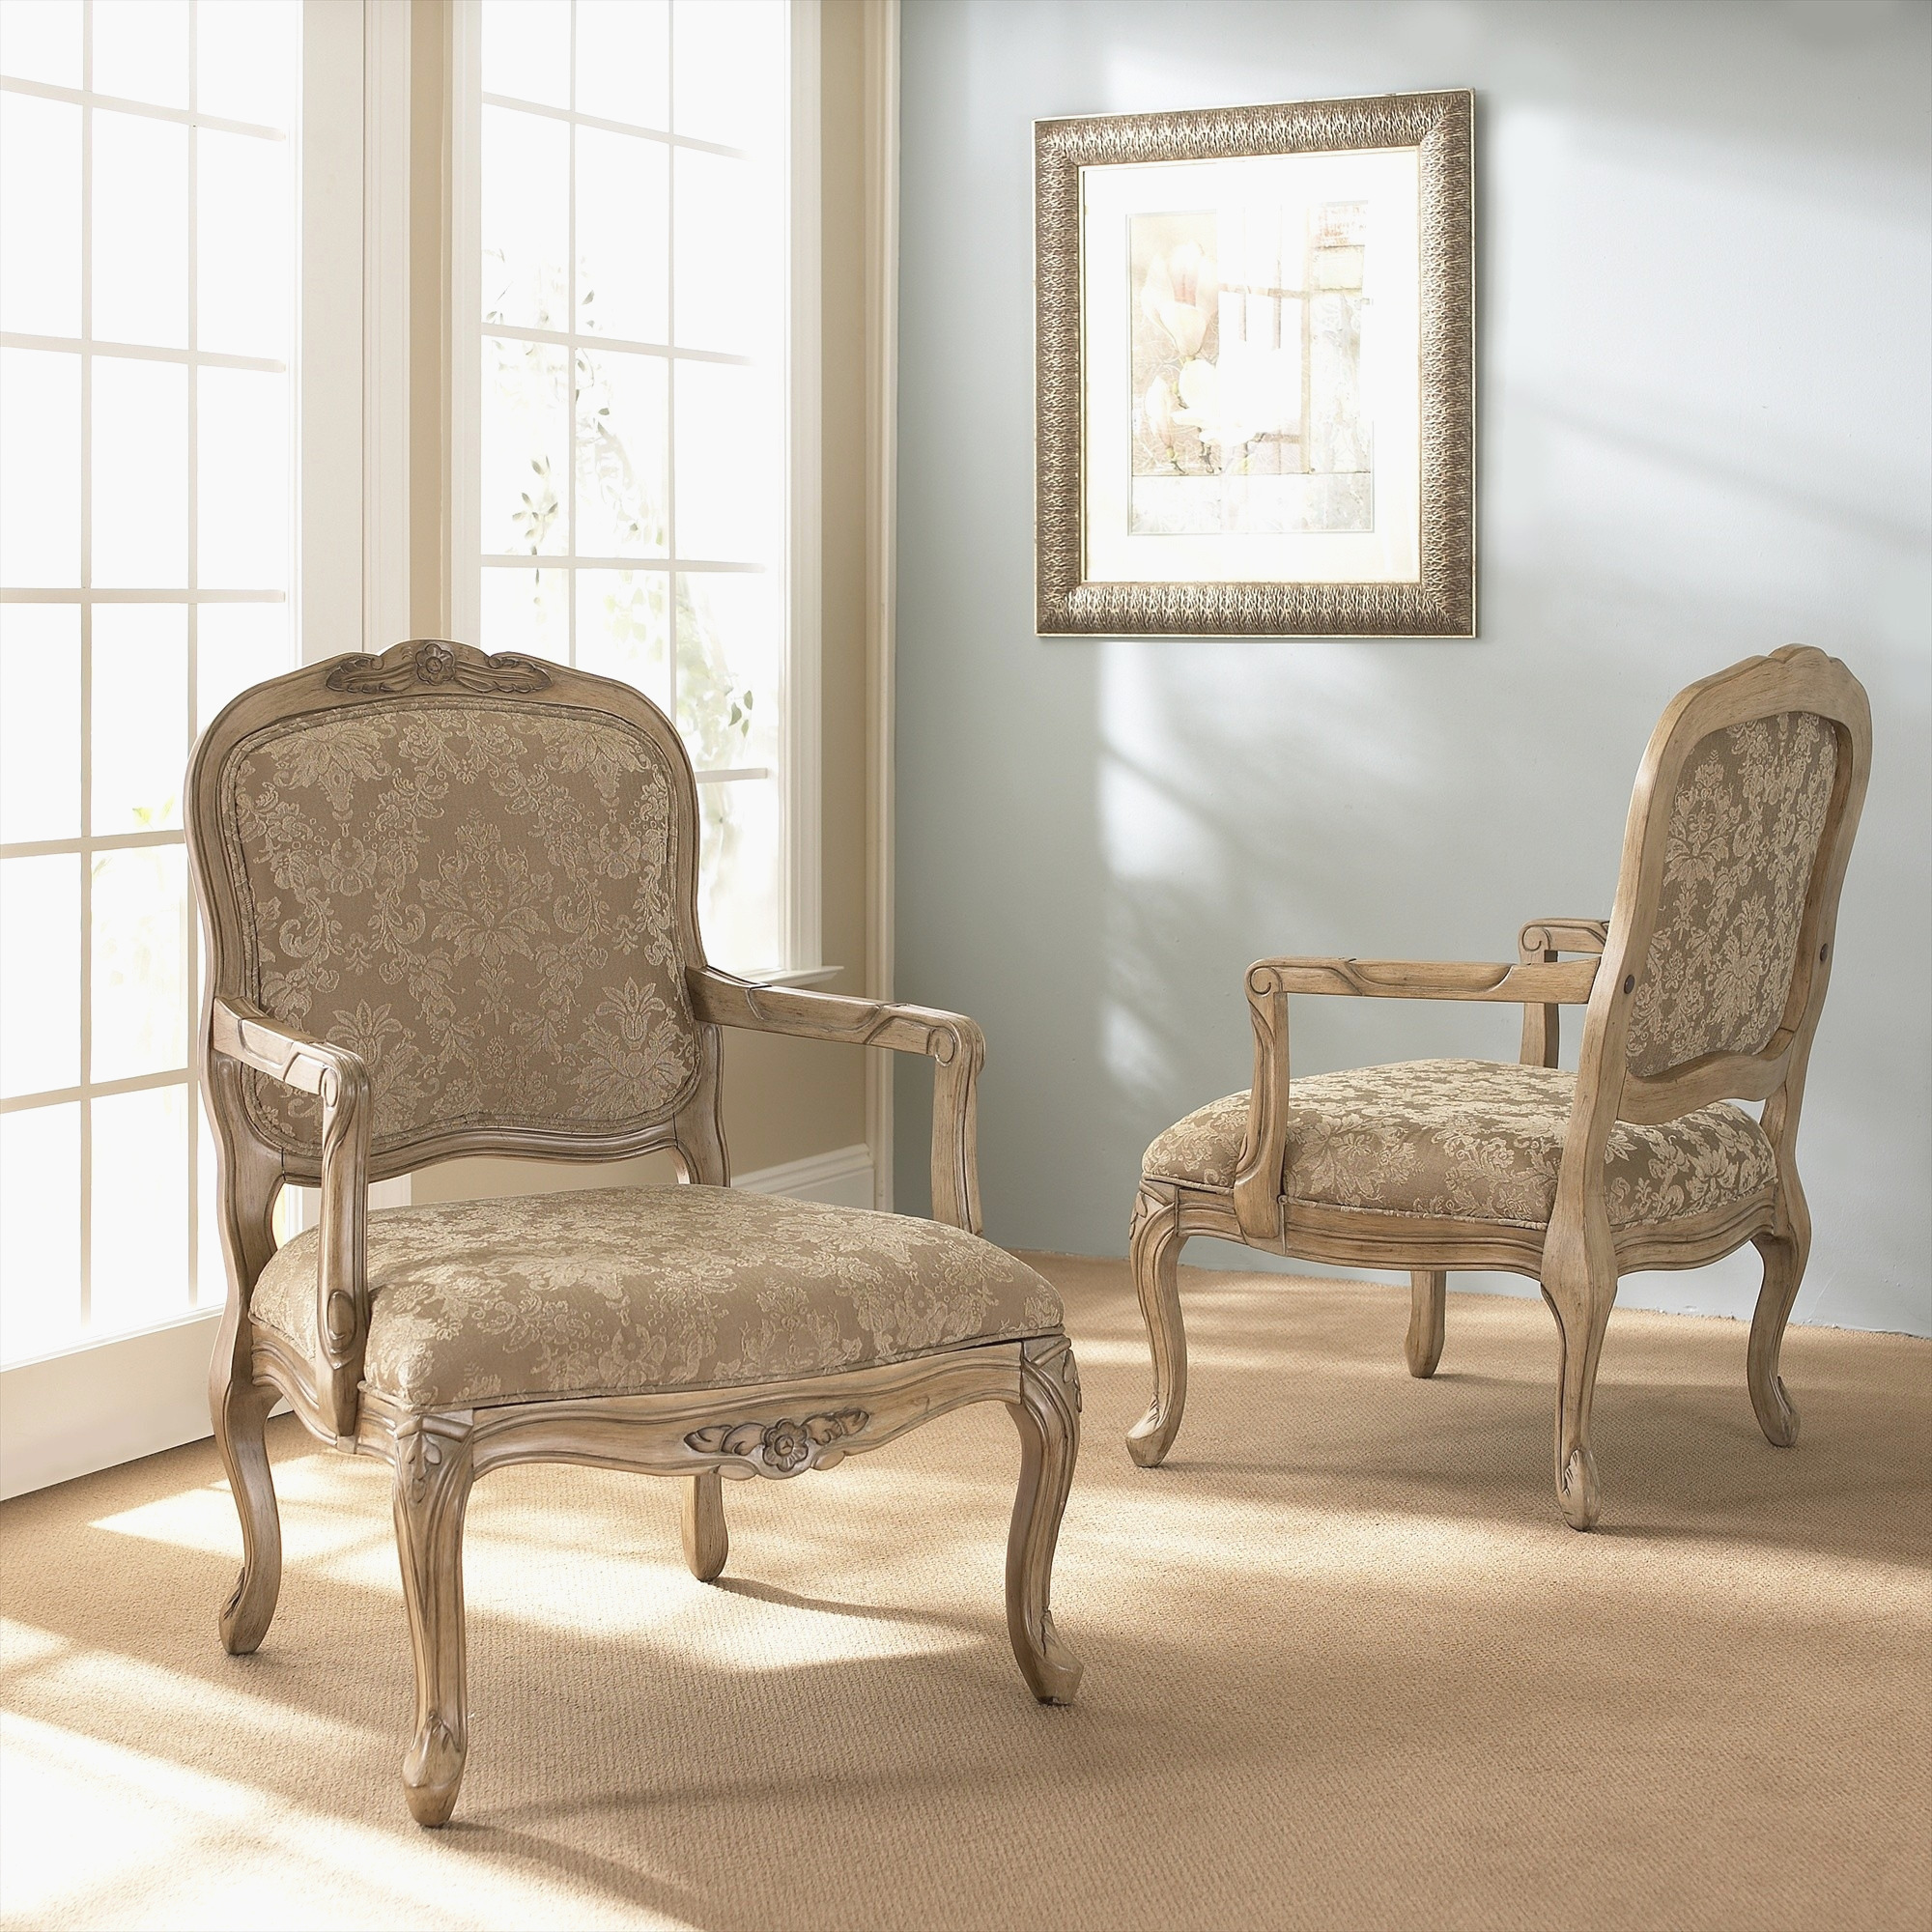 Small Side Chairs for Living Room Diy Accent Chairs with Arms Clearance  Captivating Unique Accent Chairs